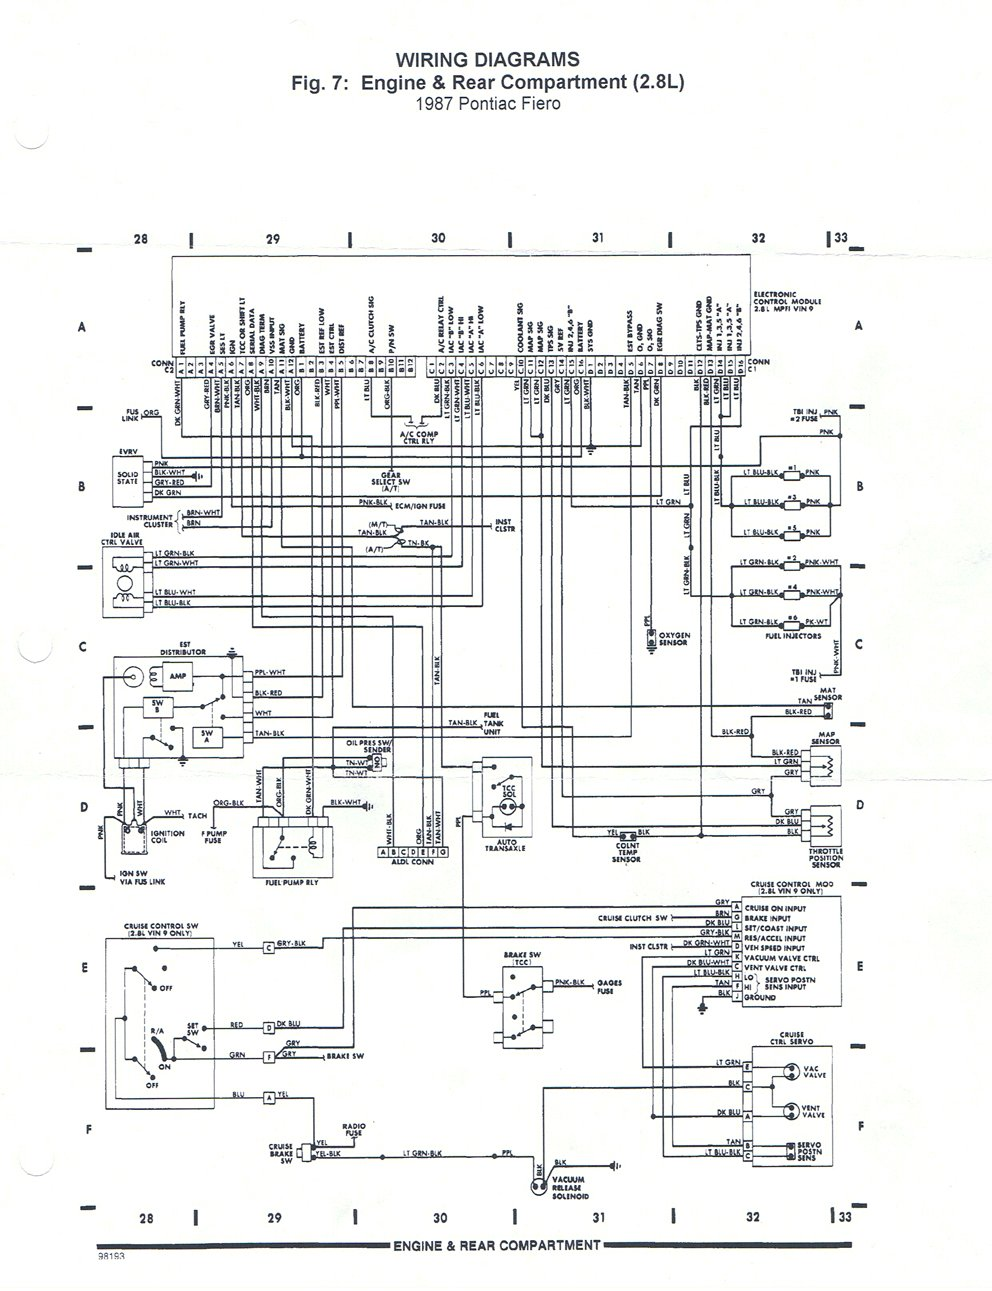 Fiero Radio Wiring Connection - Fusebox and Wiring Diagram cable-taxi -  cable-taxi.crealla.itdiagram database